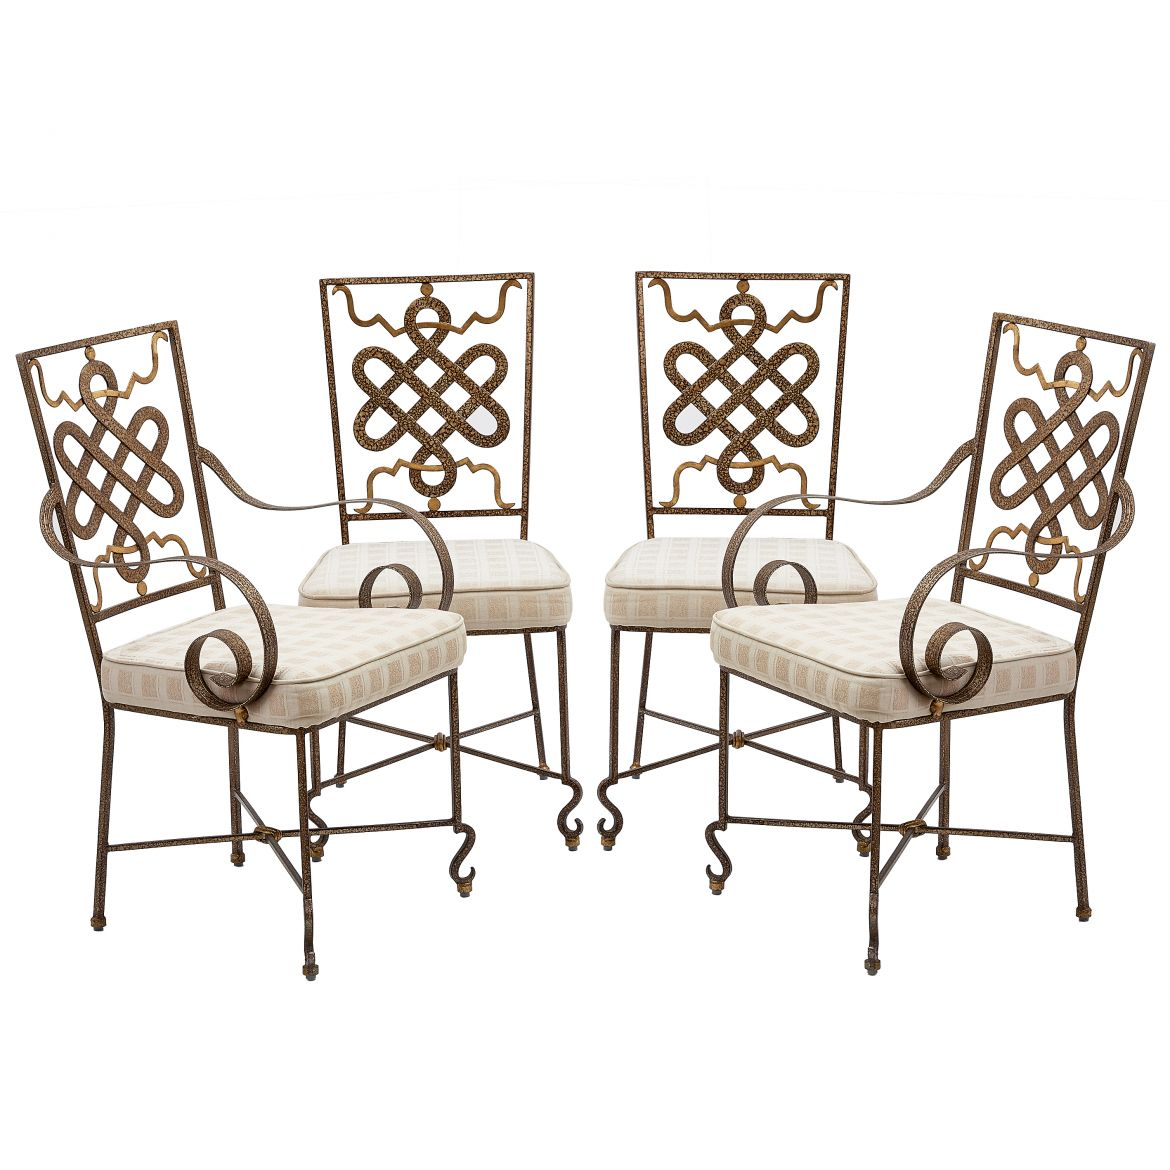 Four Lacquered Iron Chairs